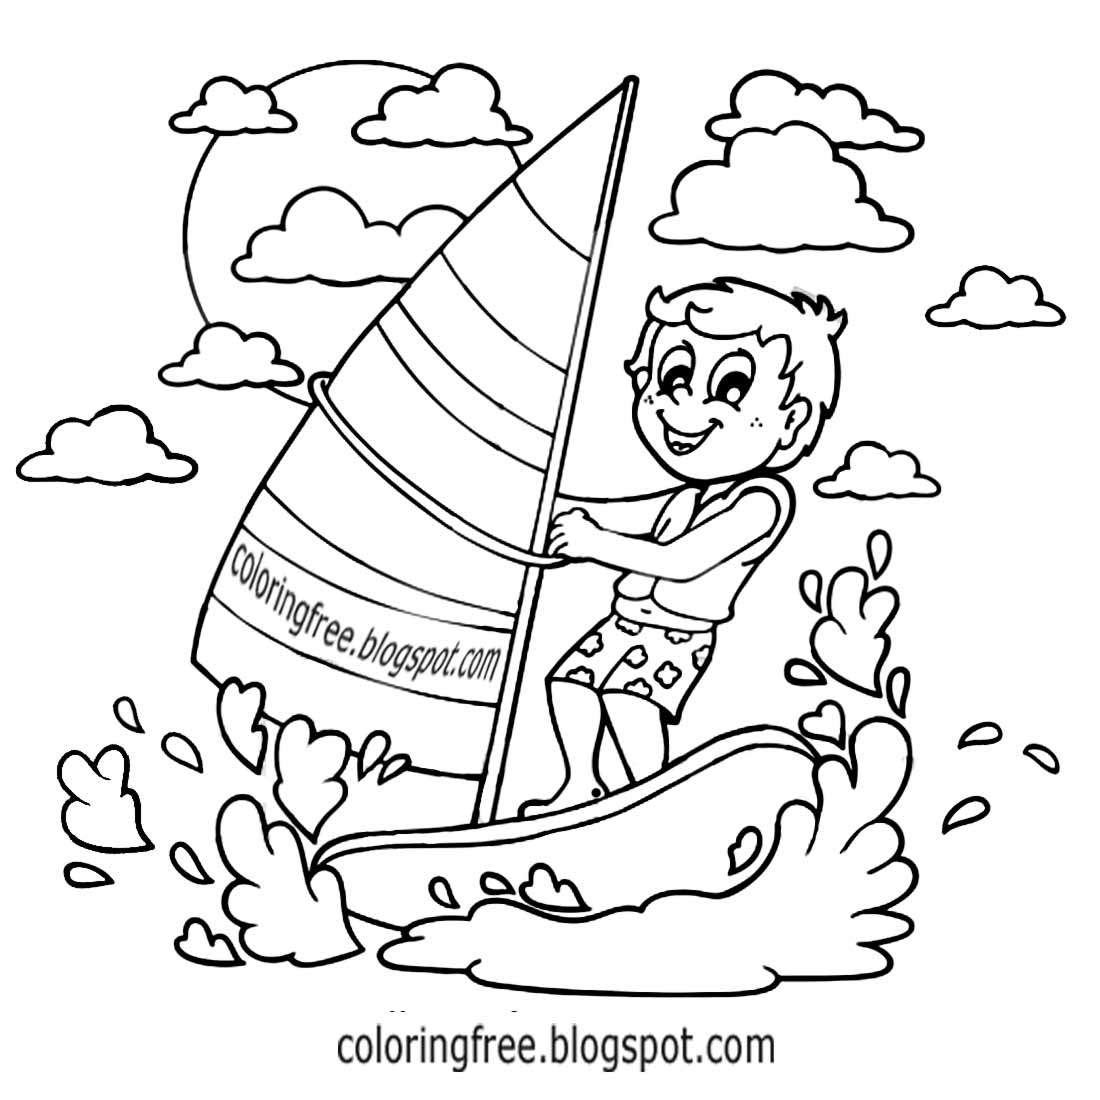 1100x1100 Sports Coloring Pages. How To Draw Cartoon Bunny Rabbit Boxing